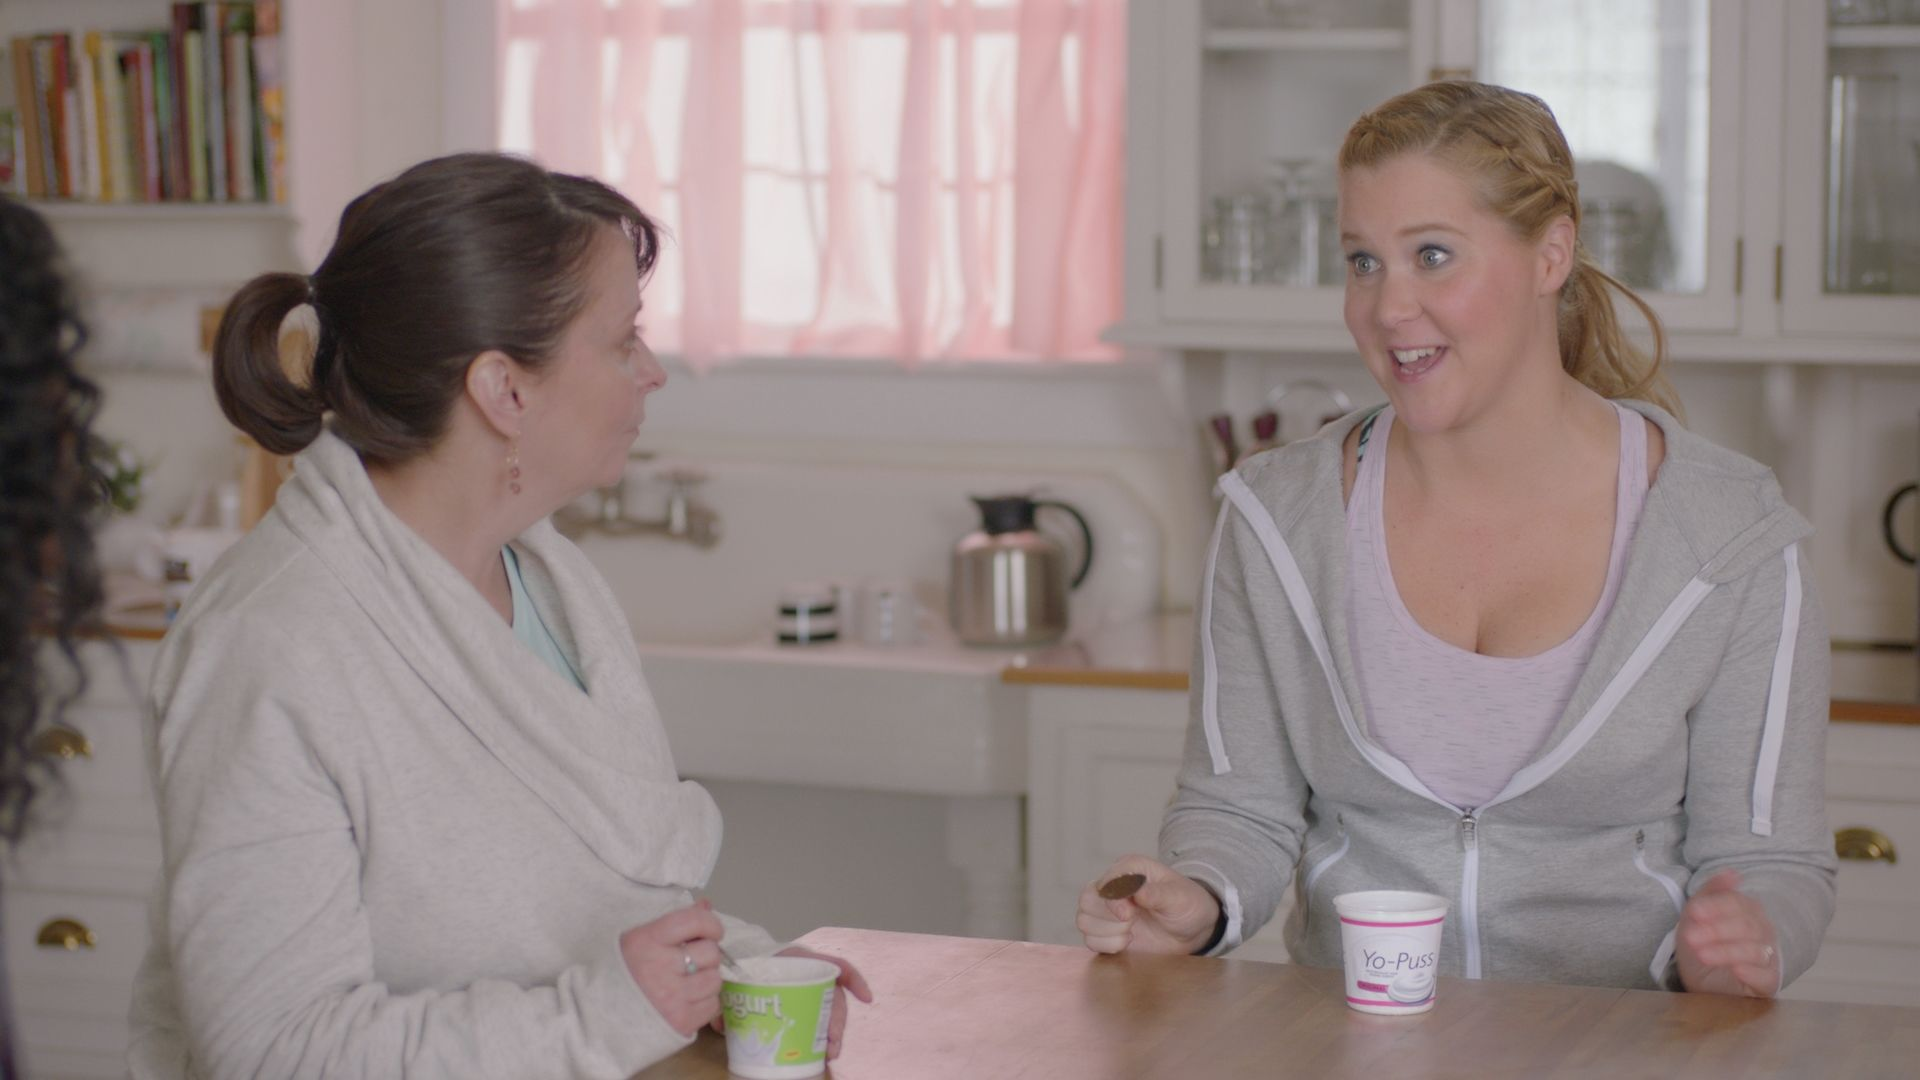 Amy Schumer Nurse Skit